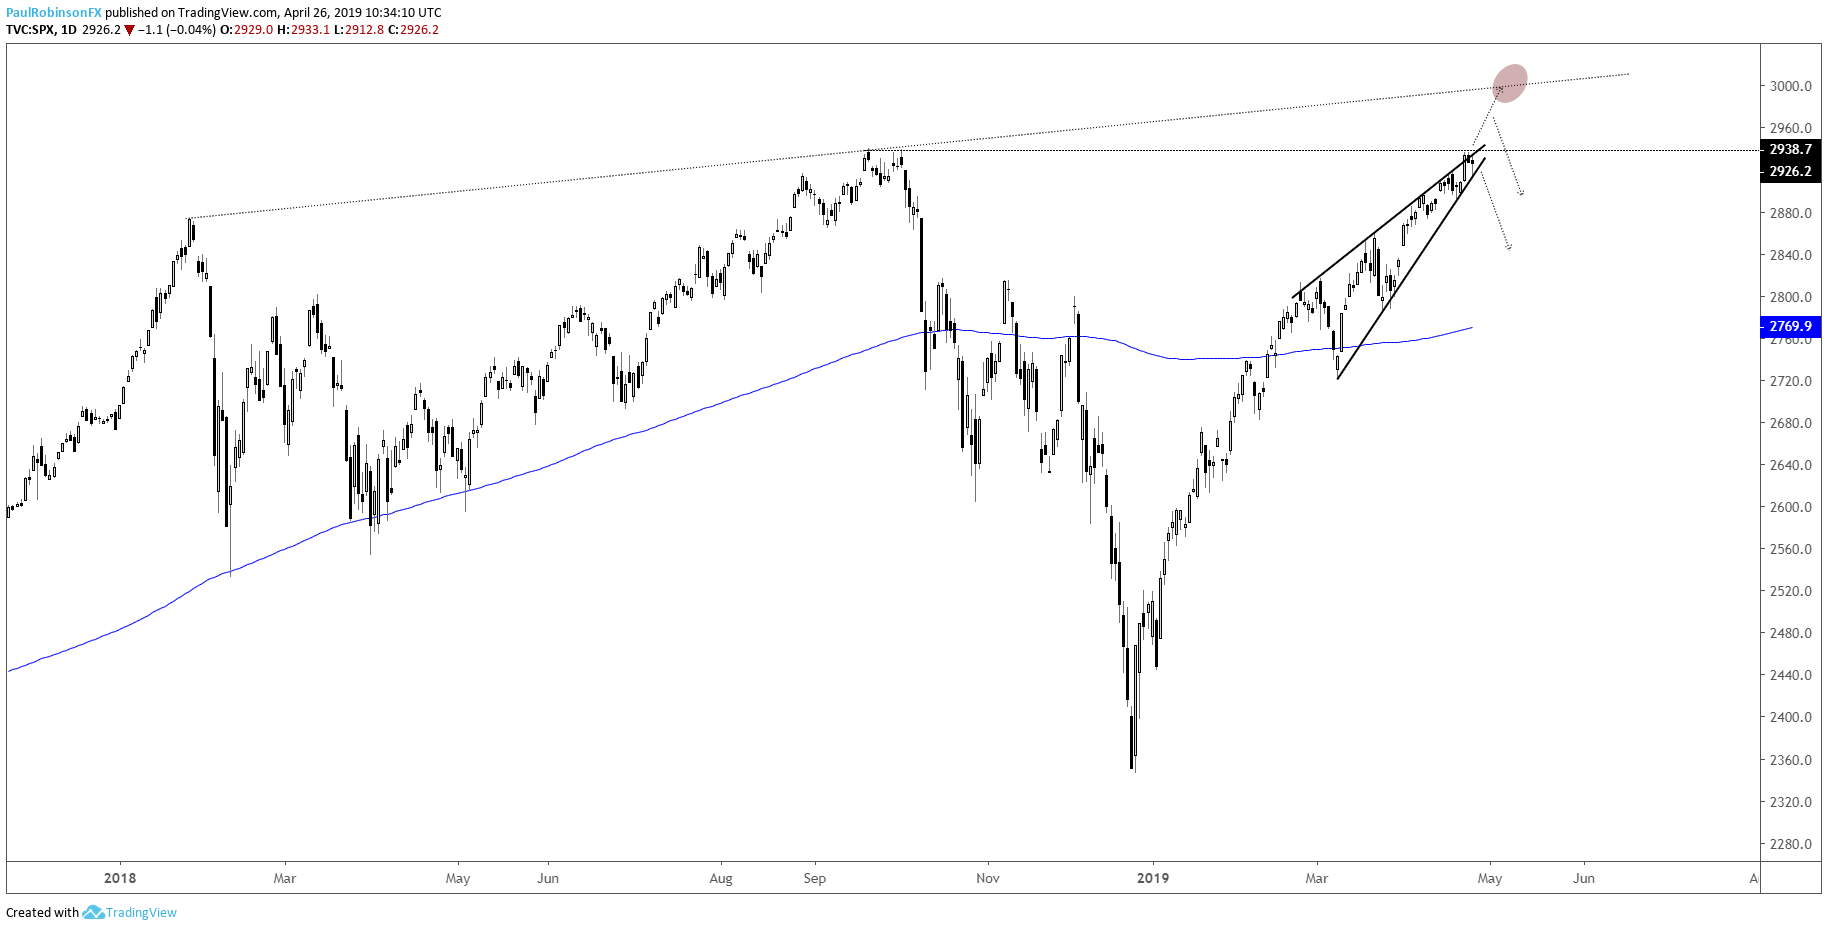 S&P 500, Dow, Nasdaq 100 Charts: Strong but Vulernable